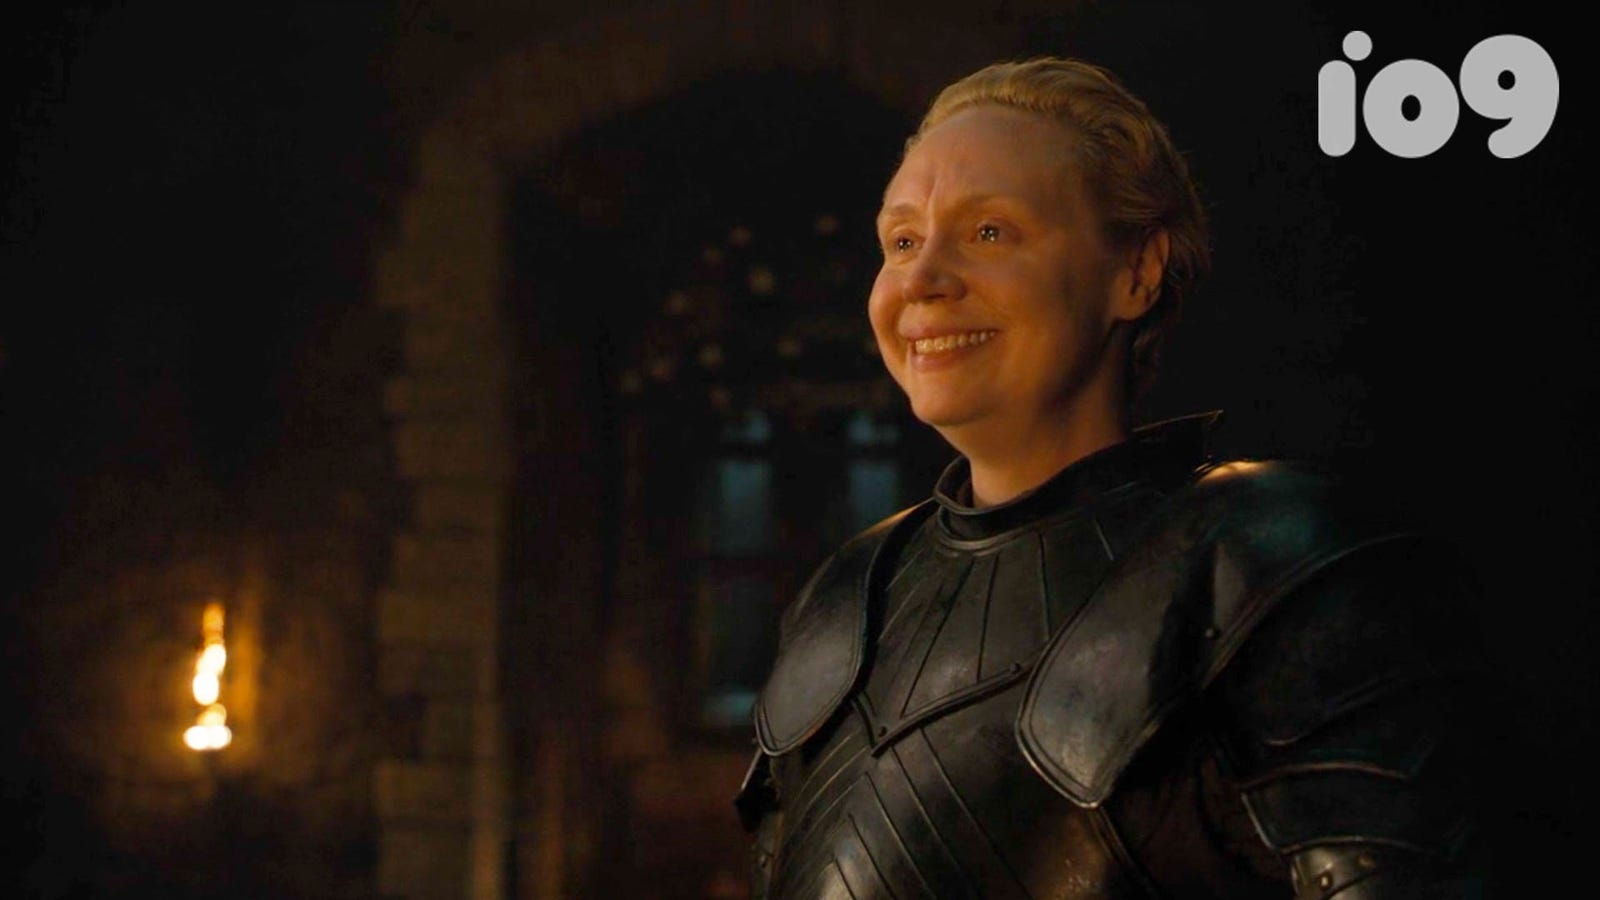 This Triumphant Game of Thrones Moment Was Long Overdue